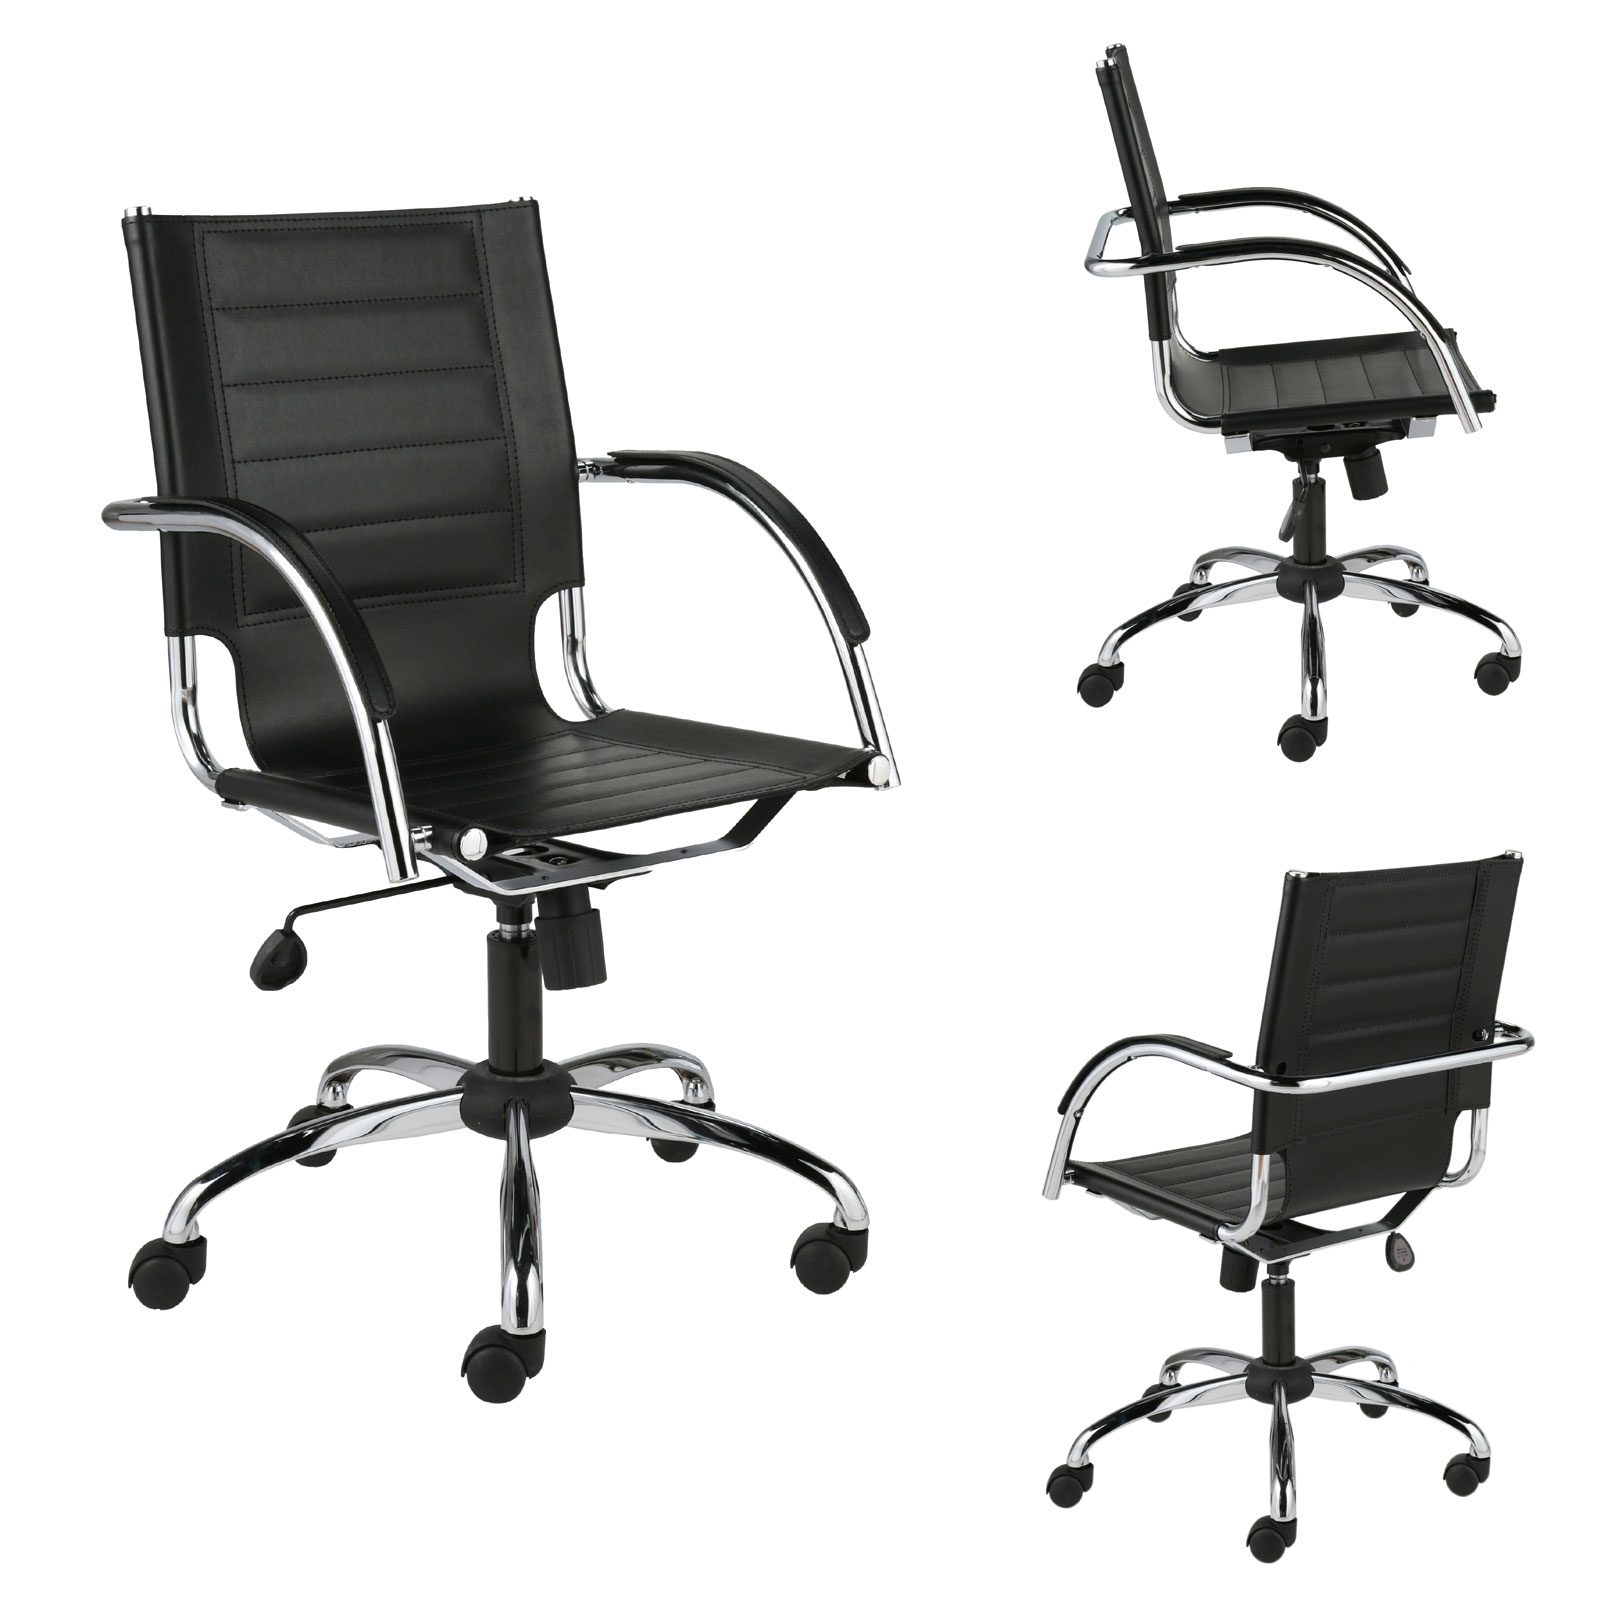 office chair genuine leather white. Office Chair Genuine Leather White /